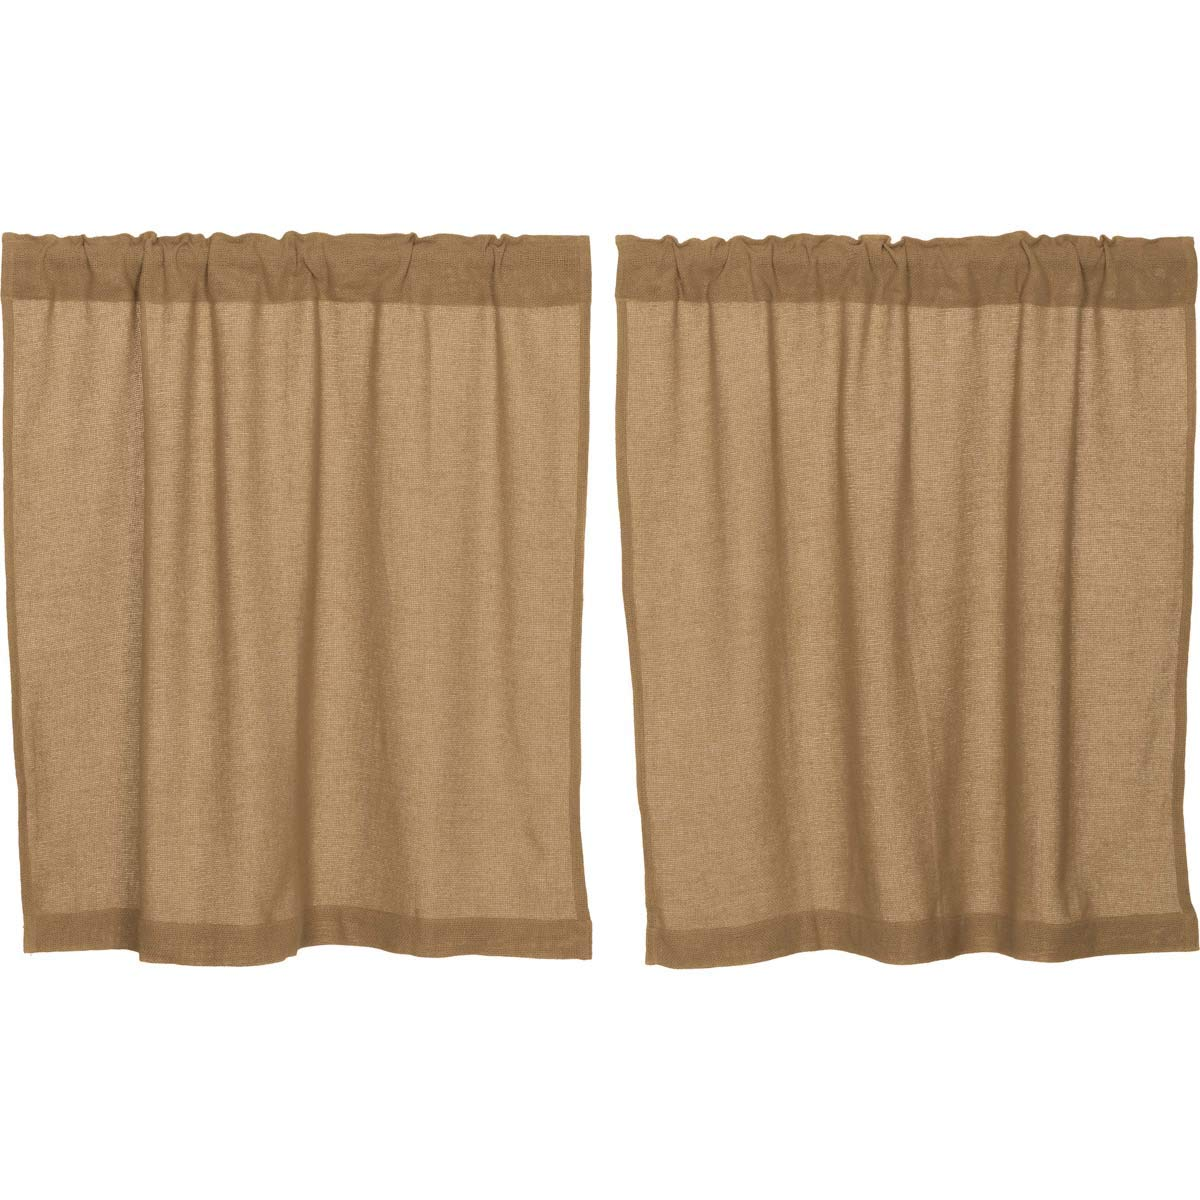 VHC Brands Classic Country Farmhouse Kitchen Window Curtains-Burlap Tan Tier Pair, L36 x W36, Natural